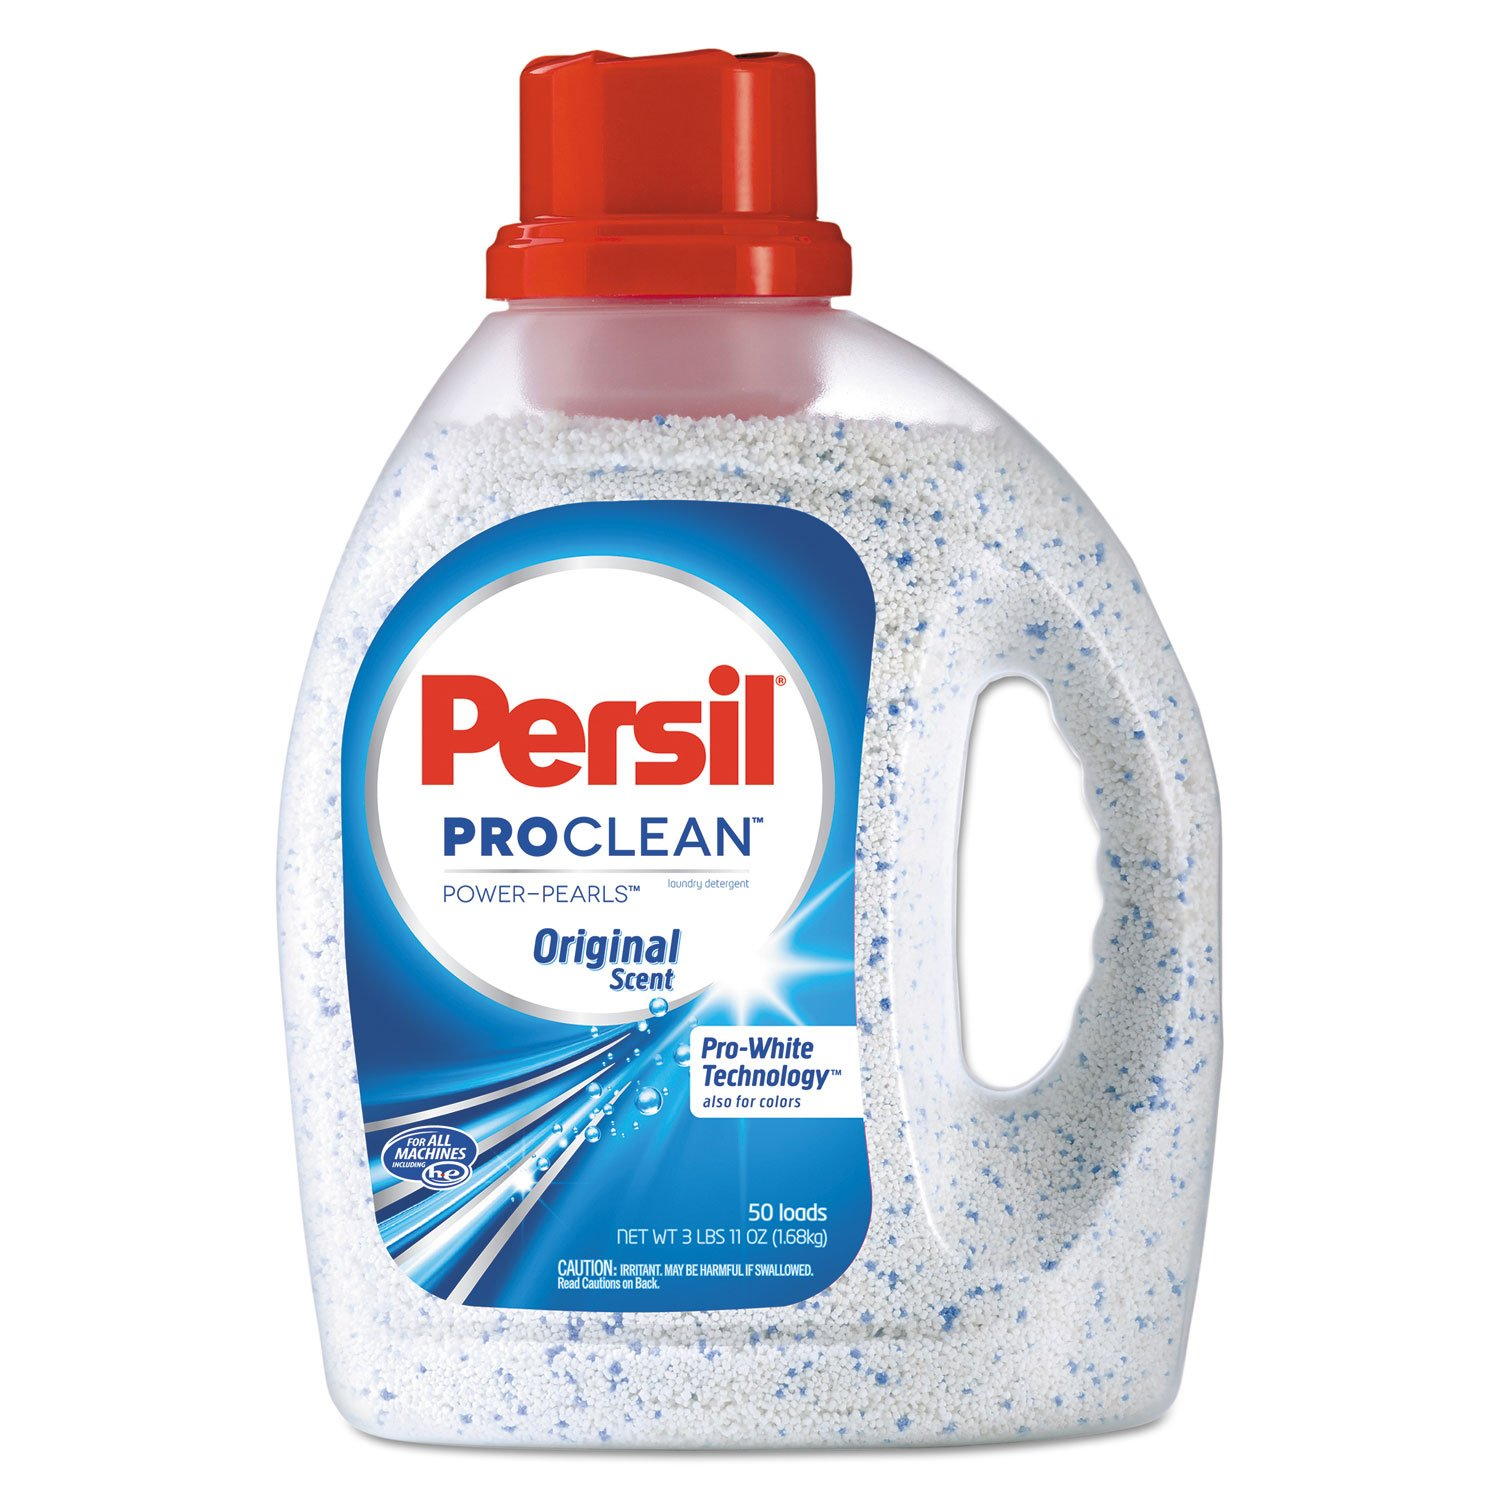 Power-Pearls Laundry Detergent, Original Scent, 59 oz Bottle, 6/Carton, Sold as 1 Carton, 6 Each per Carton by Persil